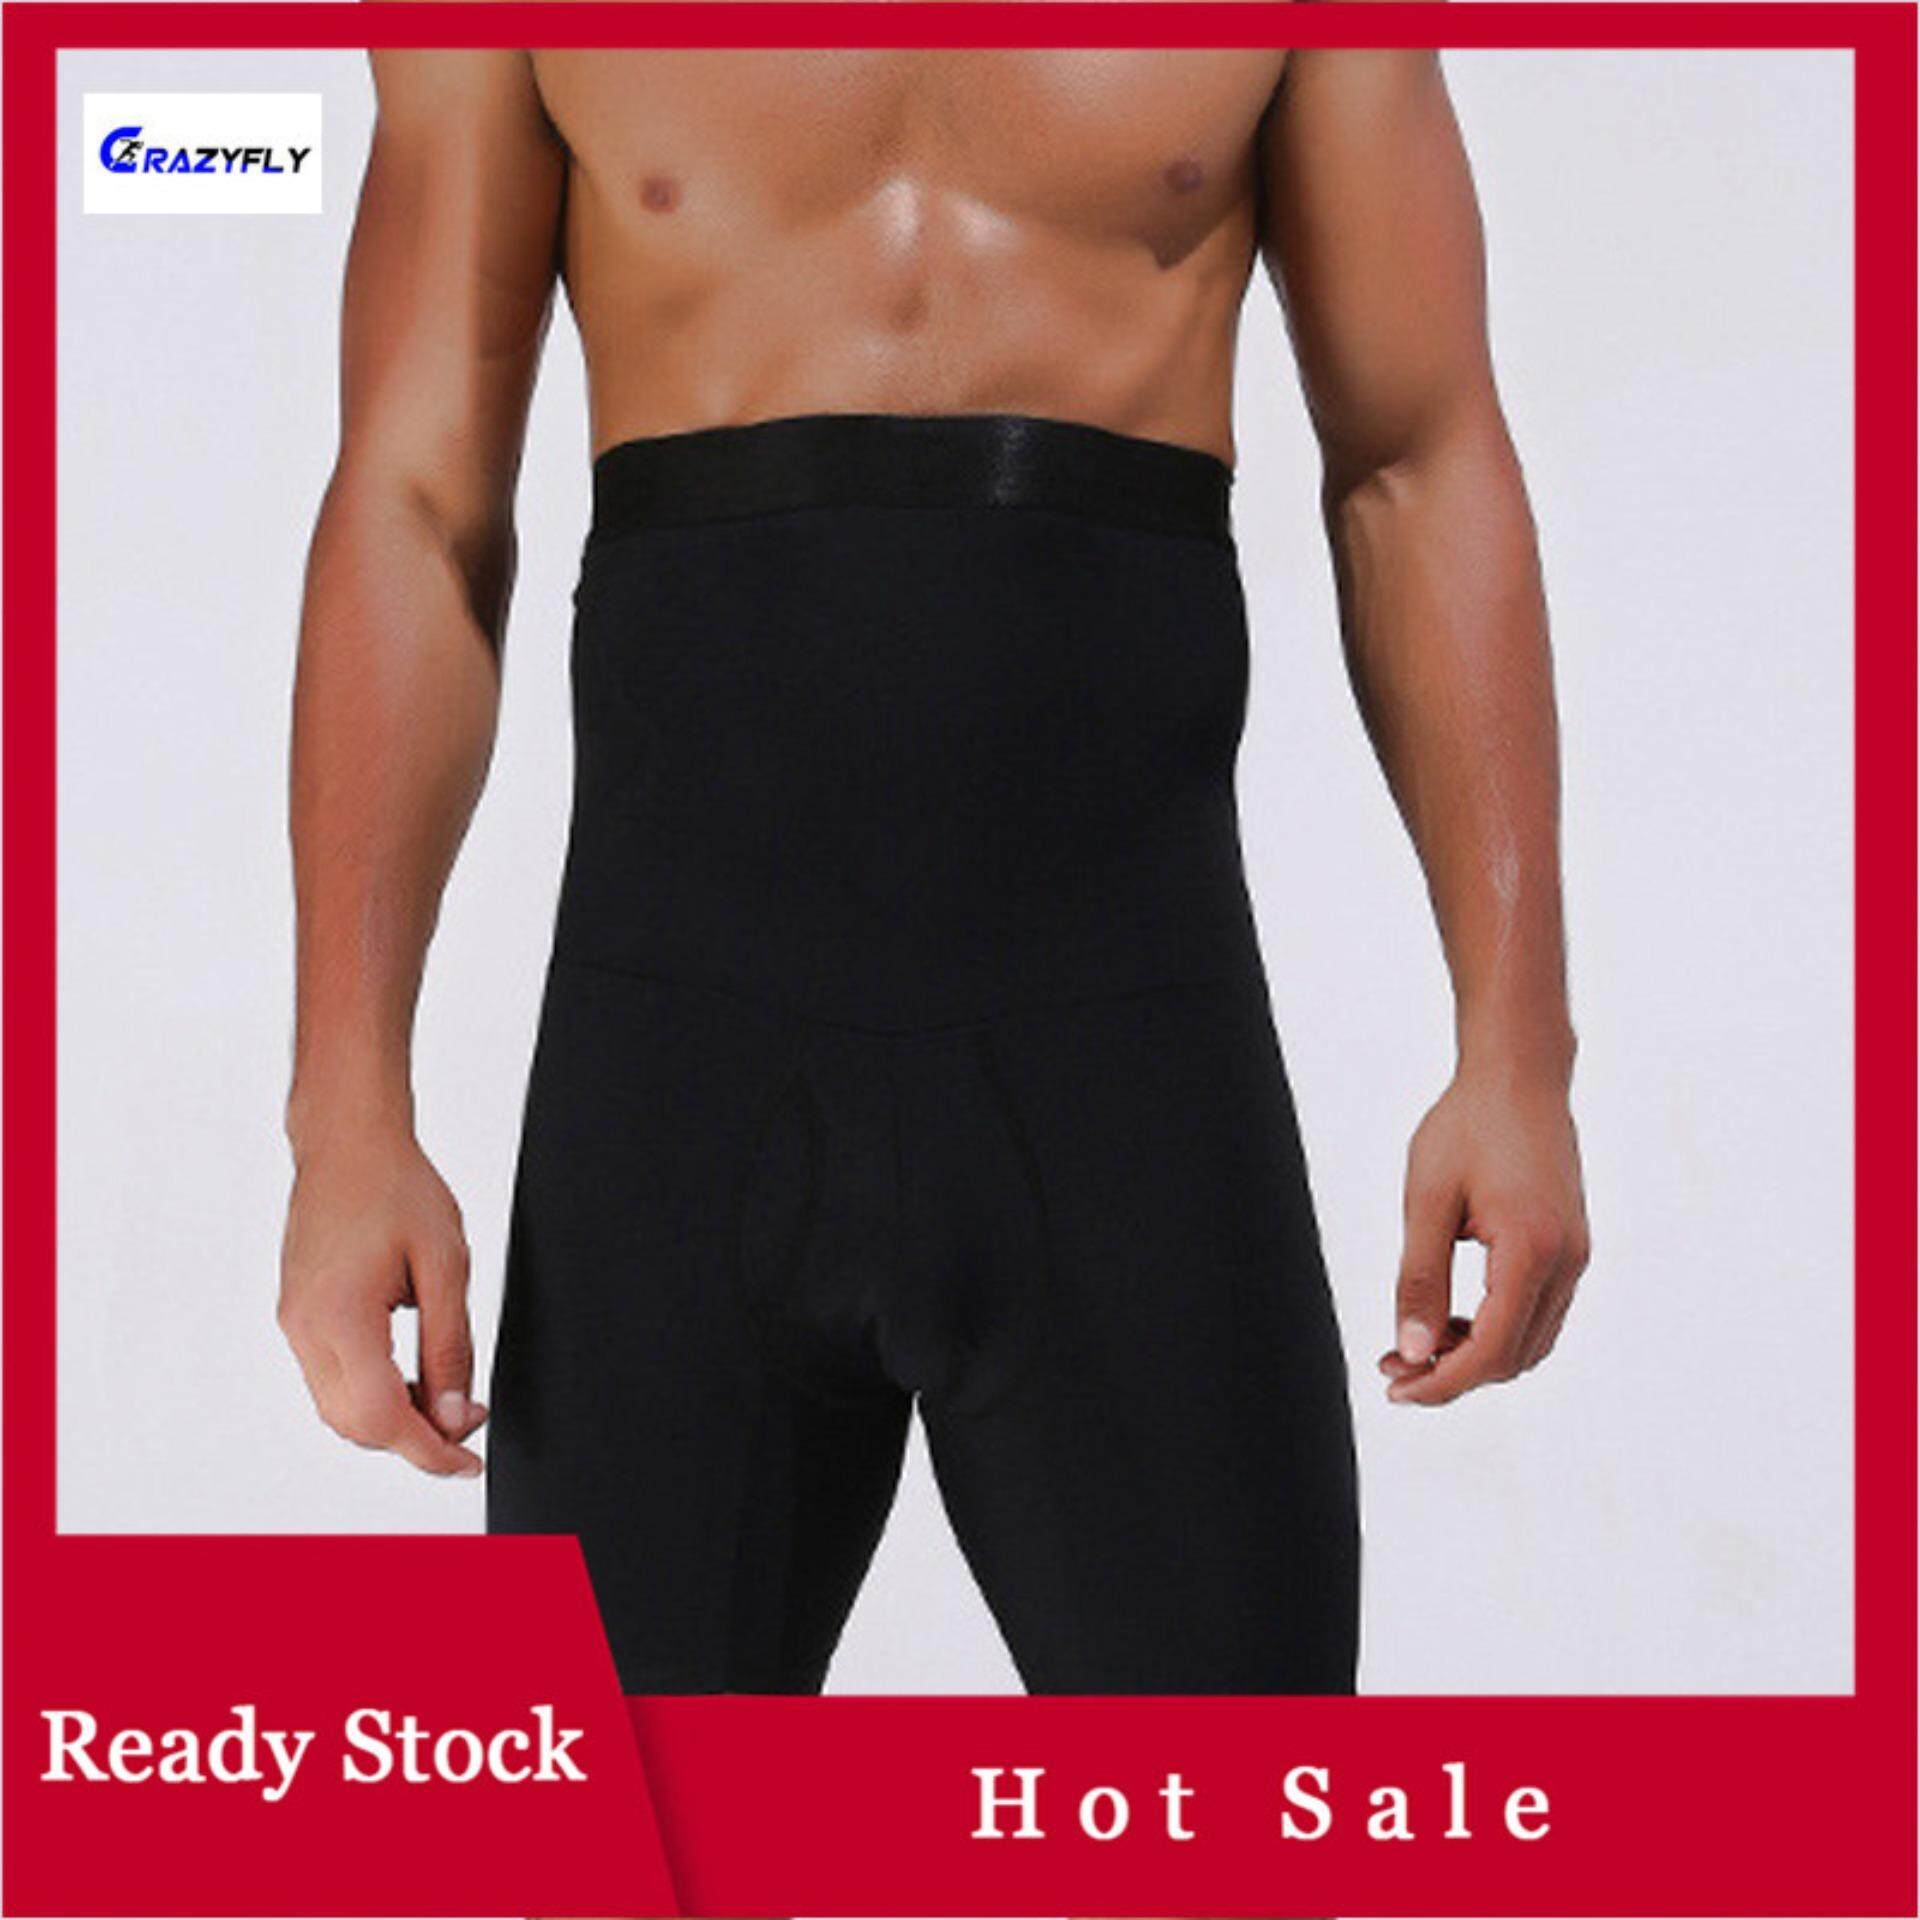 be7160e045 Men's Uniform Base Layers. 7015 items found in Compression. Crazyfly Men  Ultra Lift Slimming Body Shaper Tummy Boxer High Waist Brief Panties